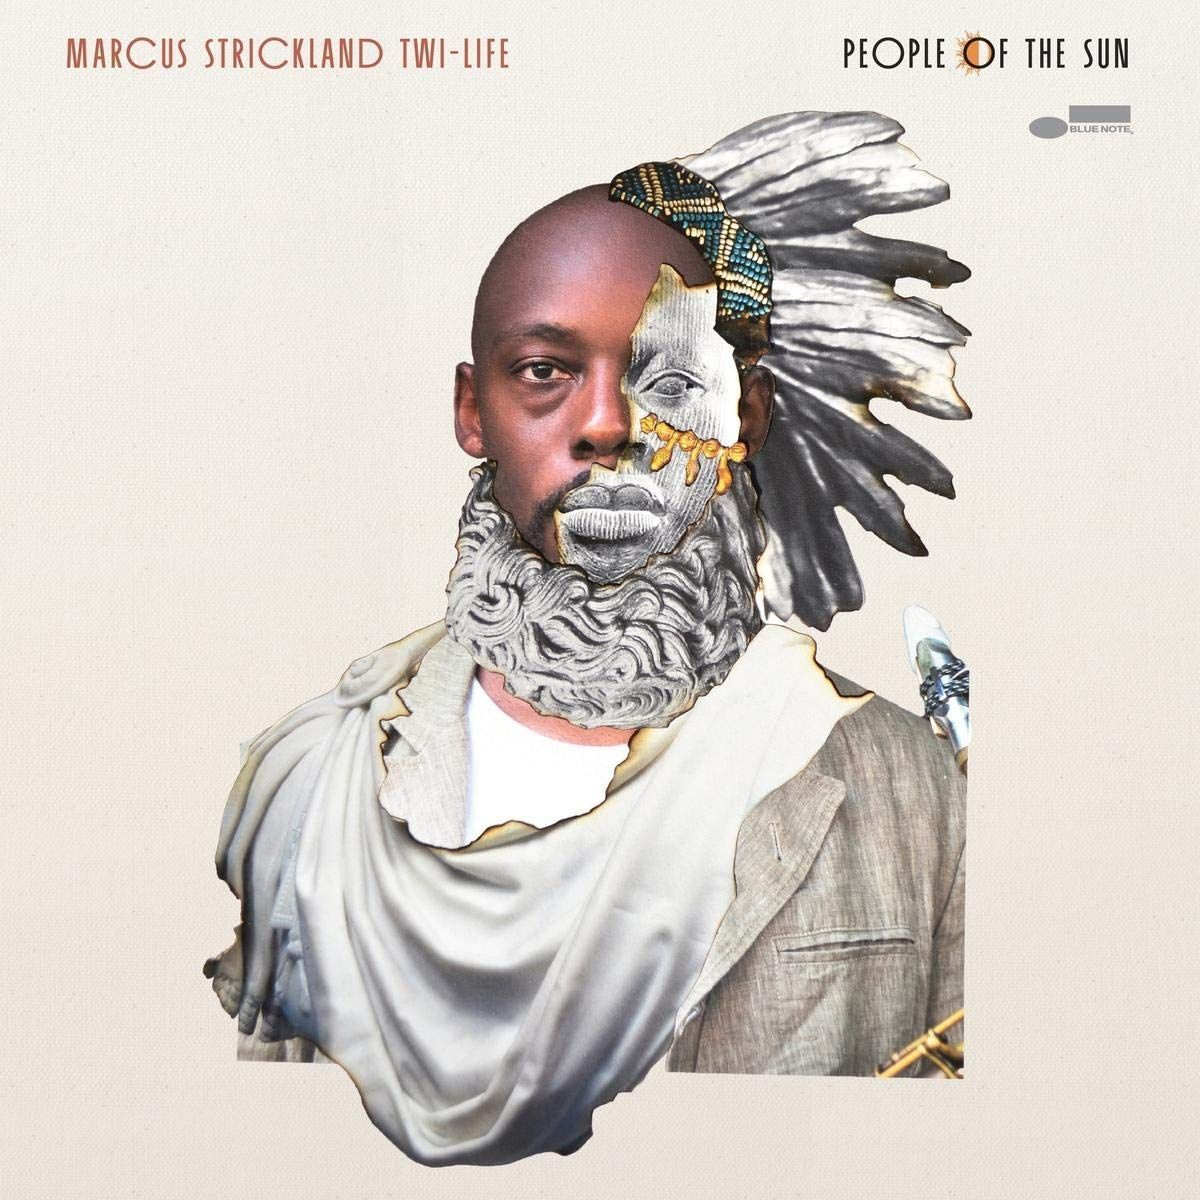 Marcus Strickland Marcus Strickland. People Of The Sun lrugb6514a ft as00 10 4 av ft as00 104av display touch pad